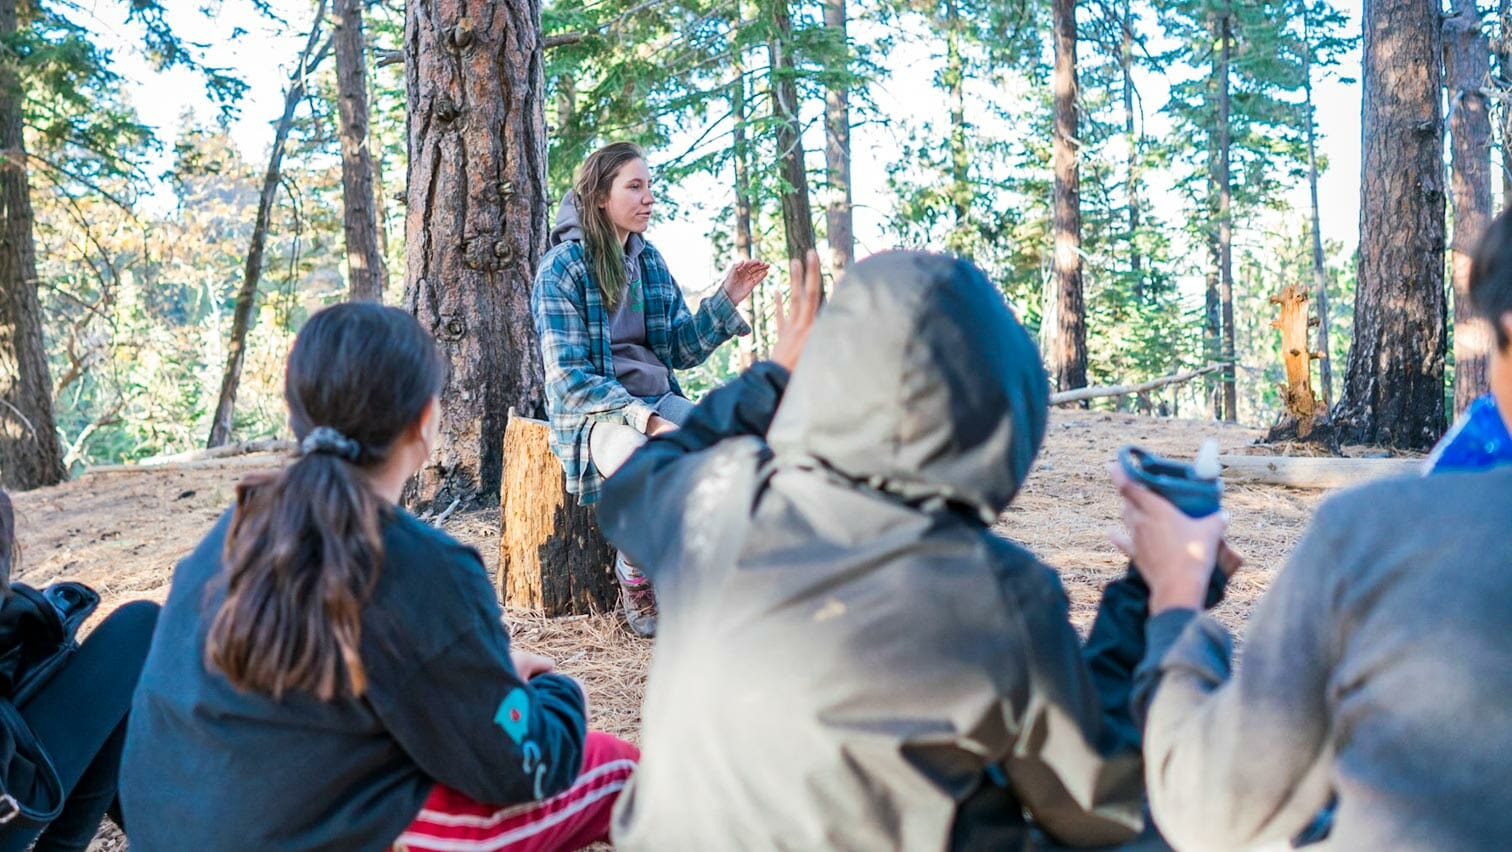 Pali instructor sits on log to address student group in woods